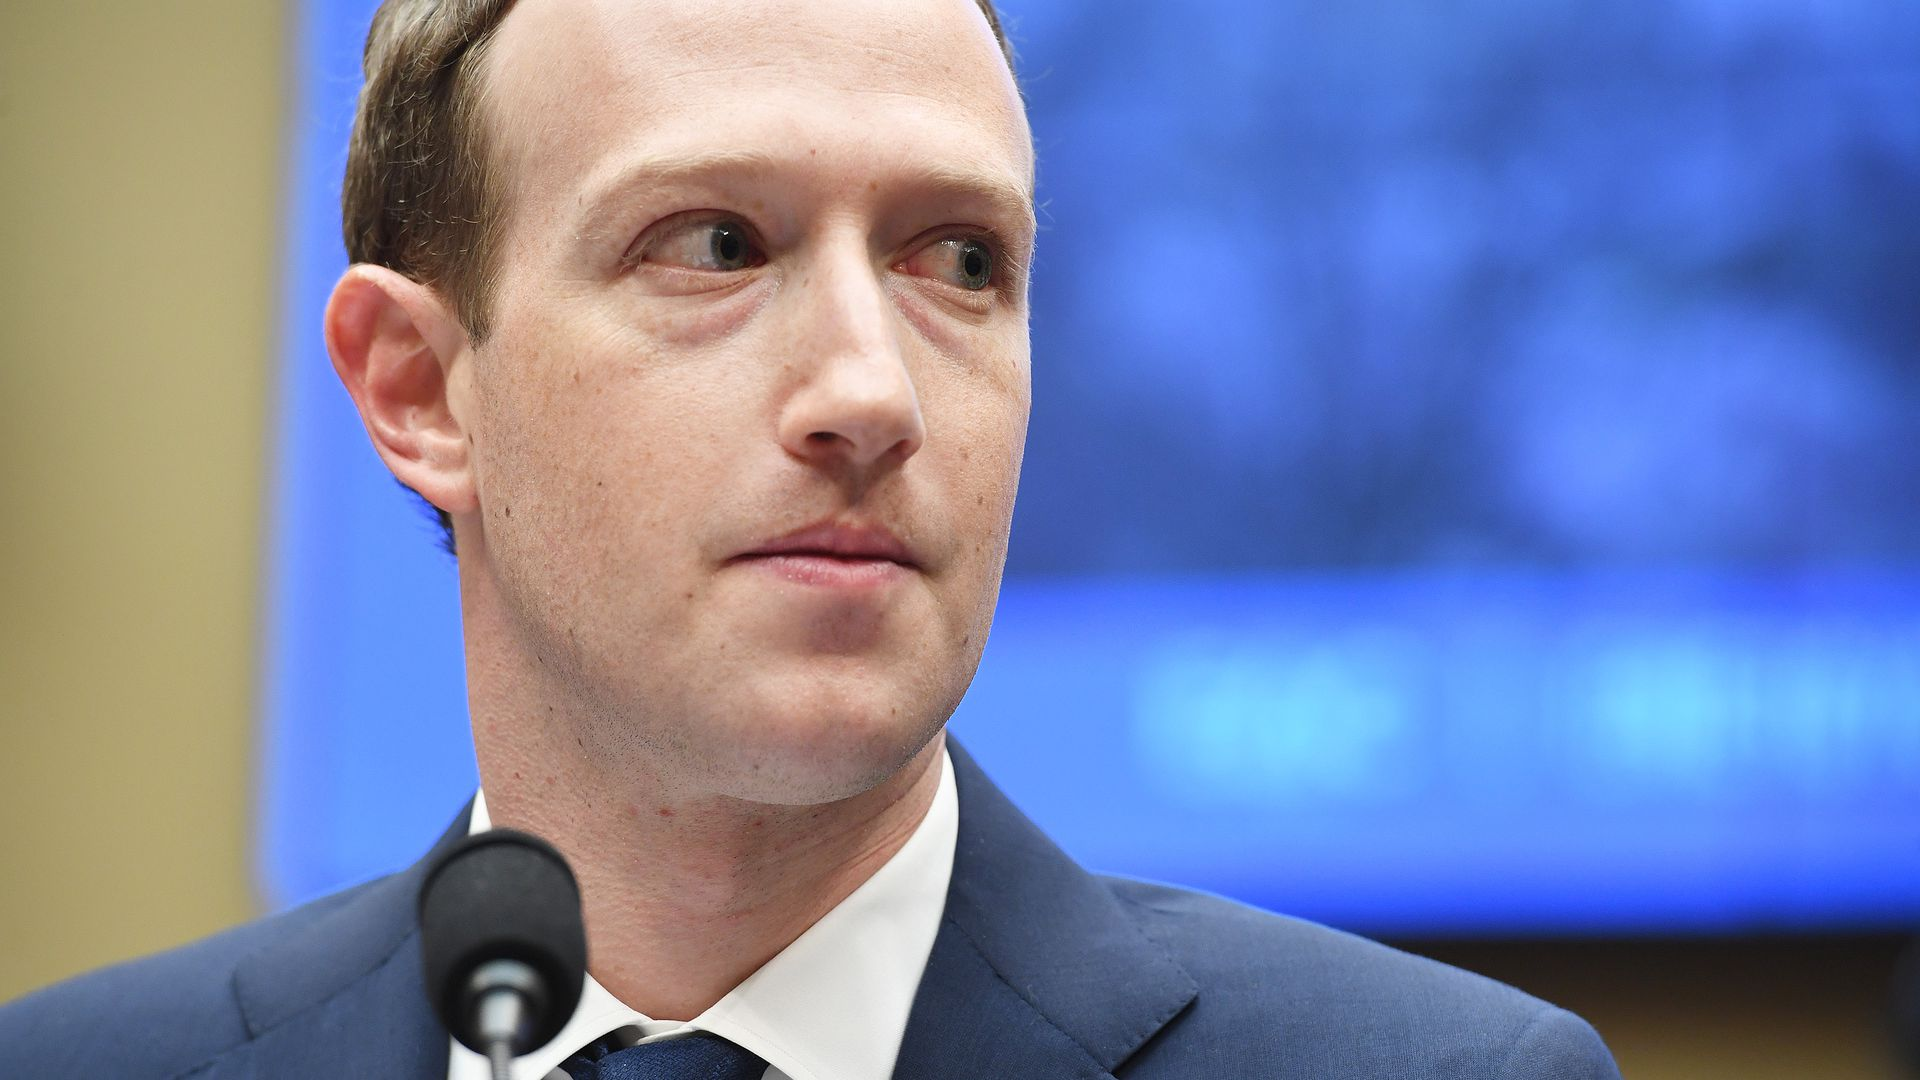 A close-up shot of Facebook's Mark Zuckerberg wearing a suit